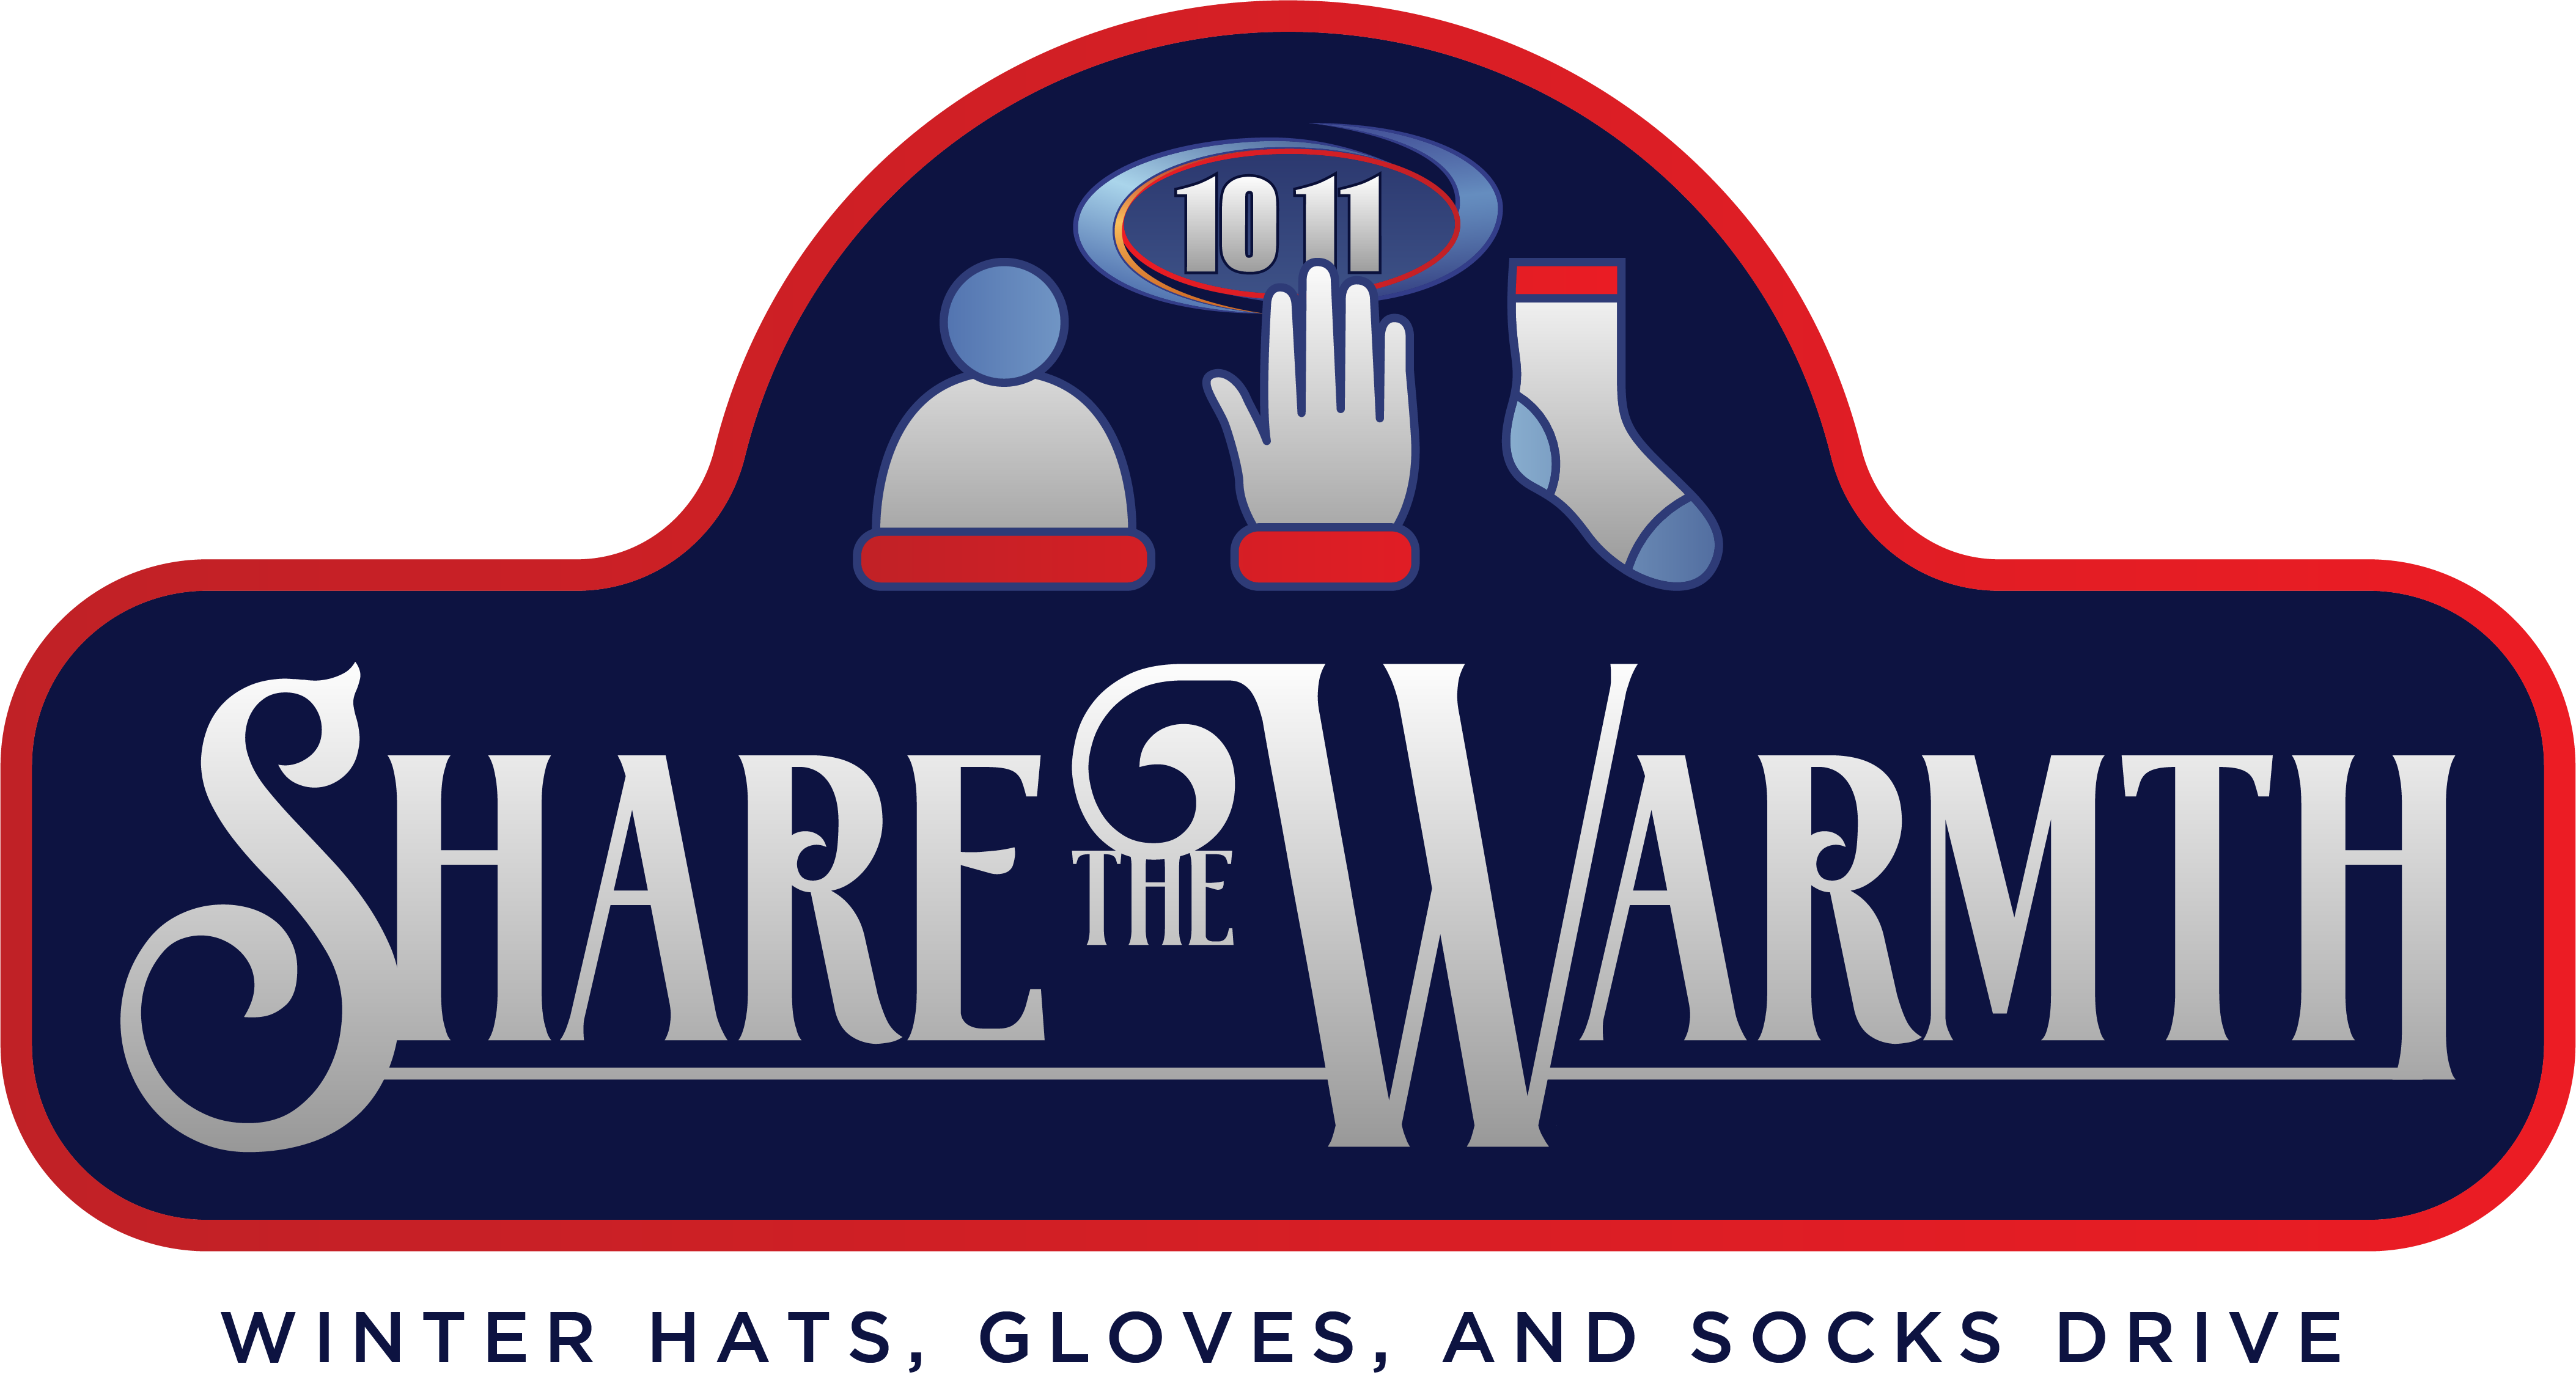 Share the Warmth- Donate winter hats, gloves and socks